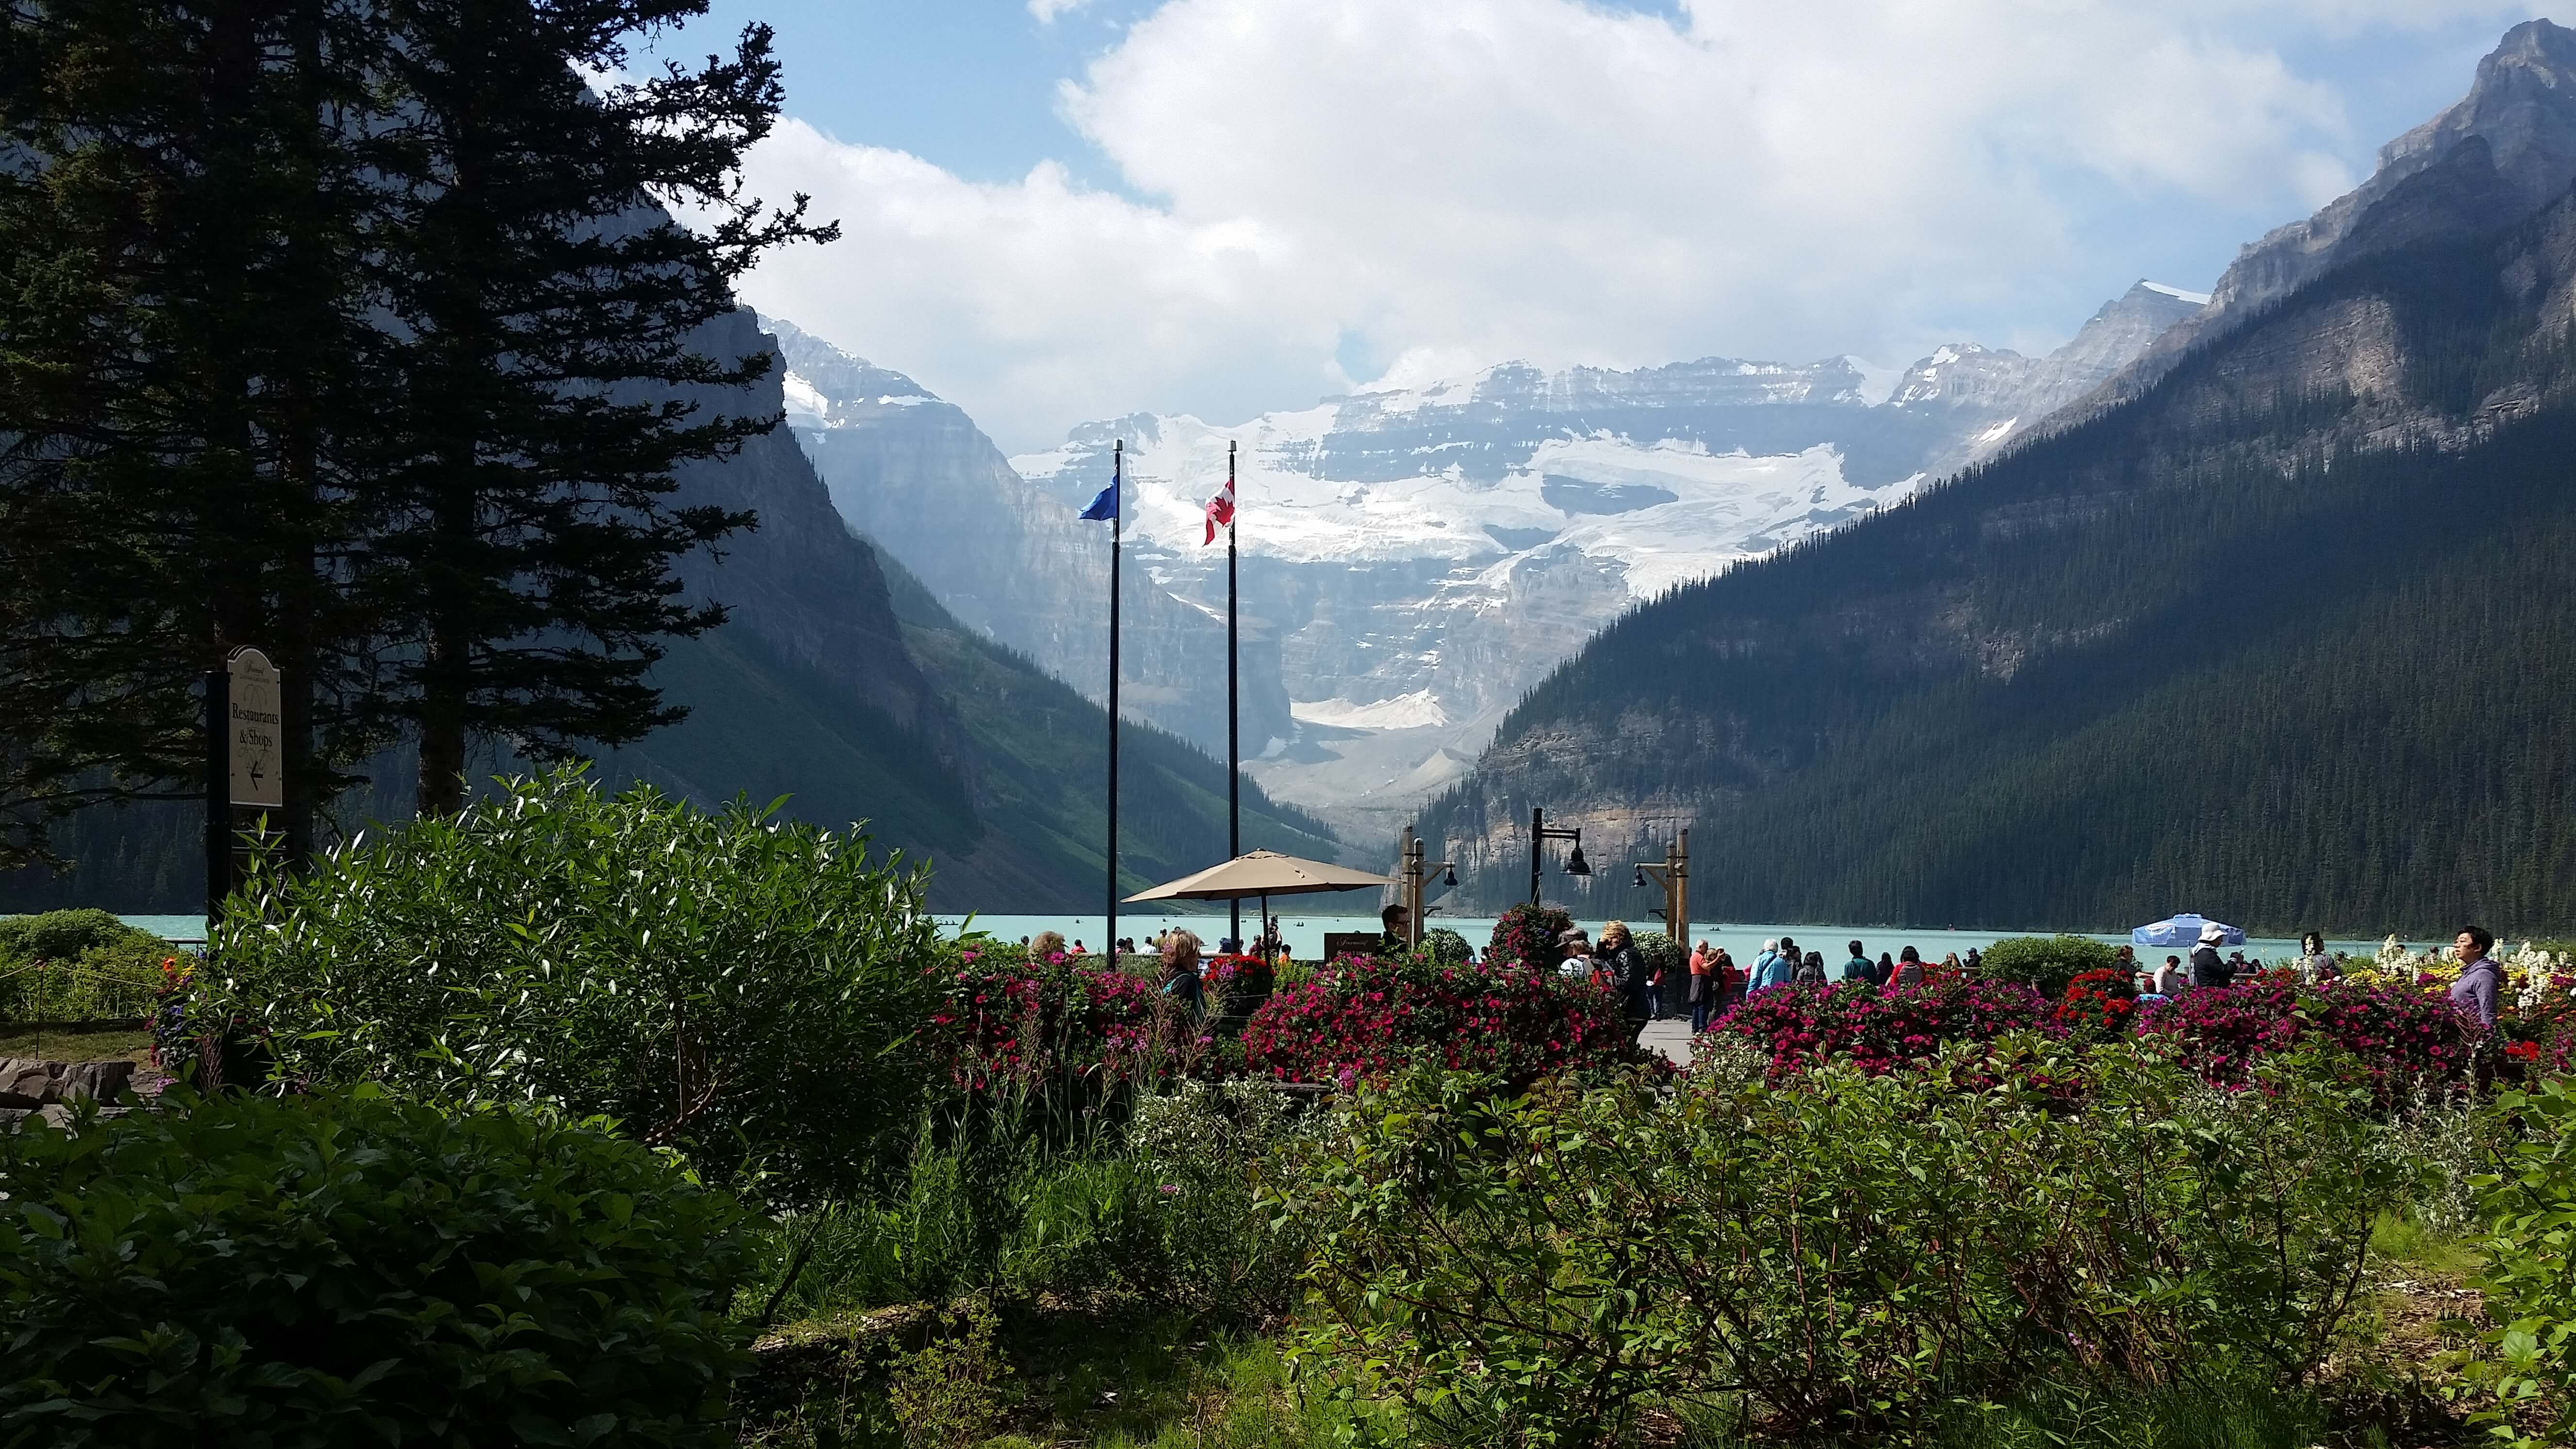 View from our Lunch table, Lake Louise, Banff National Park, Alberta